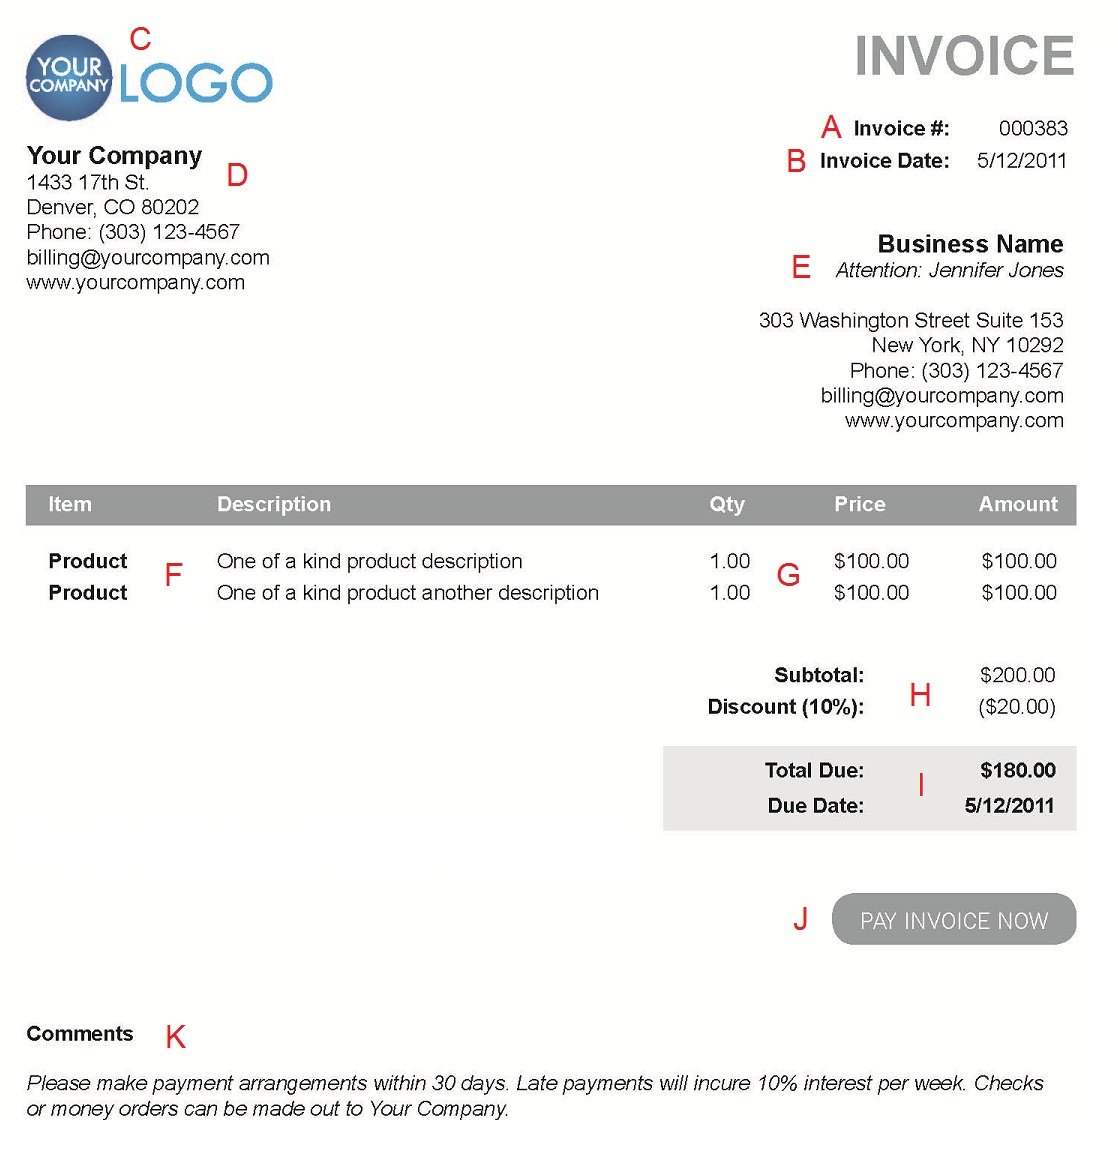 Ultrablogus  Surprising The  Different Sections Of An Electronic Payment Invoice With Licious A  With Amazing Free Invoice App For Iphone Also Auto Repair Invoicing Software In Addition Painters Invoice Template And Is Invoice Price A Good Deal As Well As Invoicing Process Flow Chart Additionally  Toyota Sienna Xle Invoice Price From Paysimplecom With Ultrablogus  Licious The  Different Sections Of An Electronic Payment Invoice With Amazing A  And Surprising Free Invoice App For Iphone Also Auto Repair Invoicing Software In Addition Painters Invoice Template From Paysimplecom